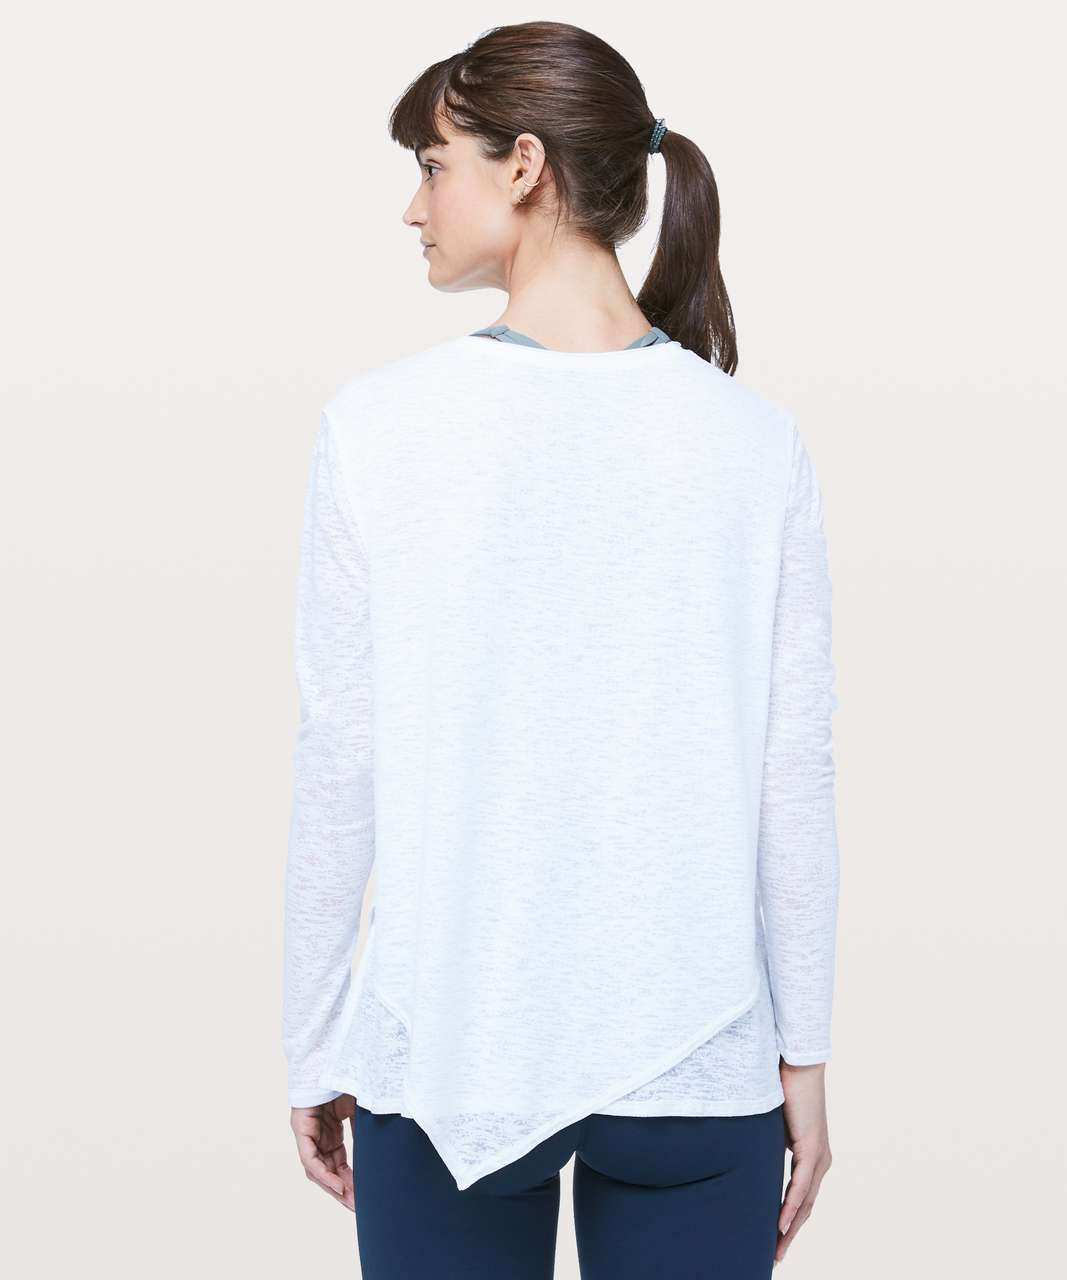 Lululemon Sweetest Day Long Sleeve *Burnout - White